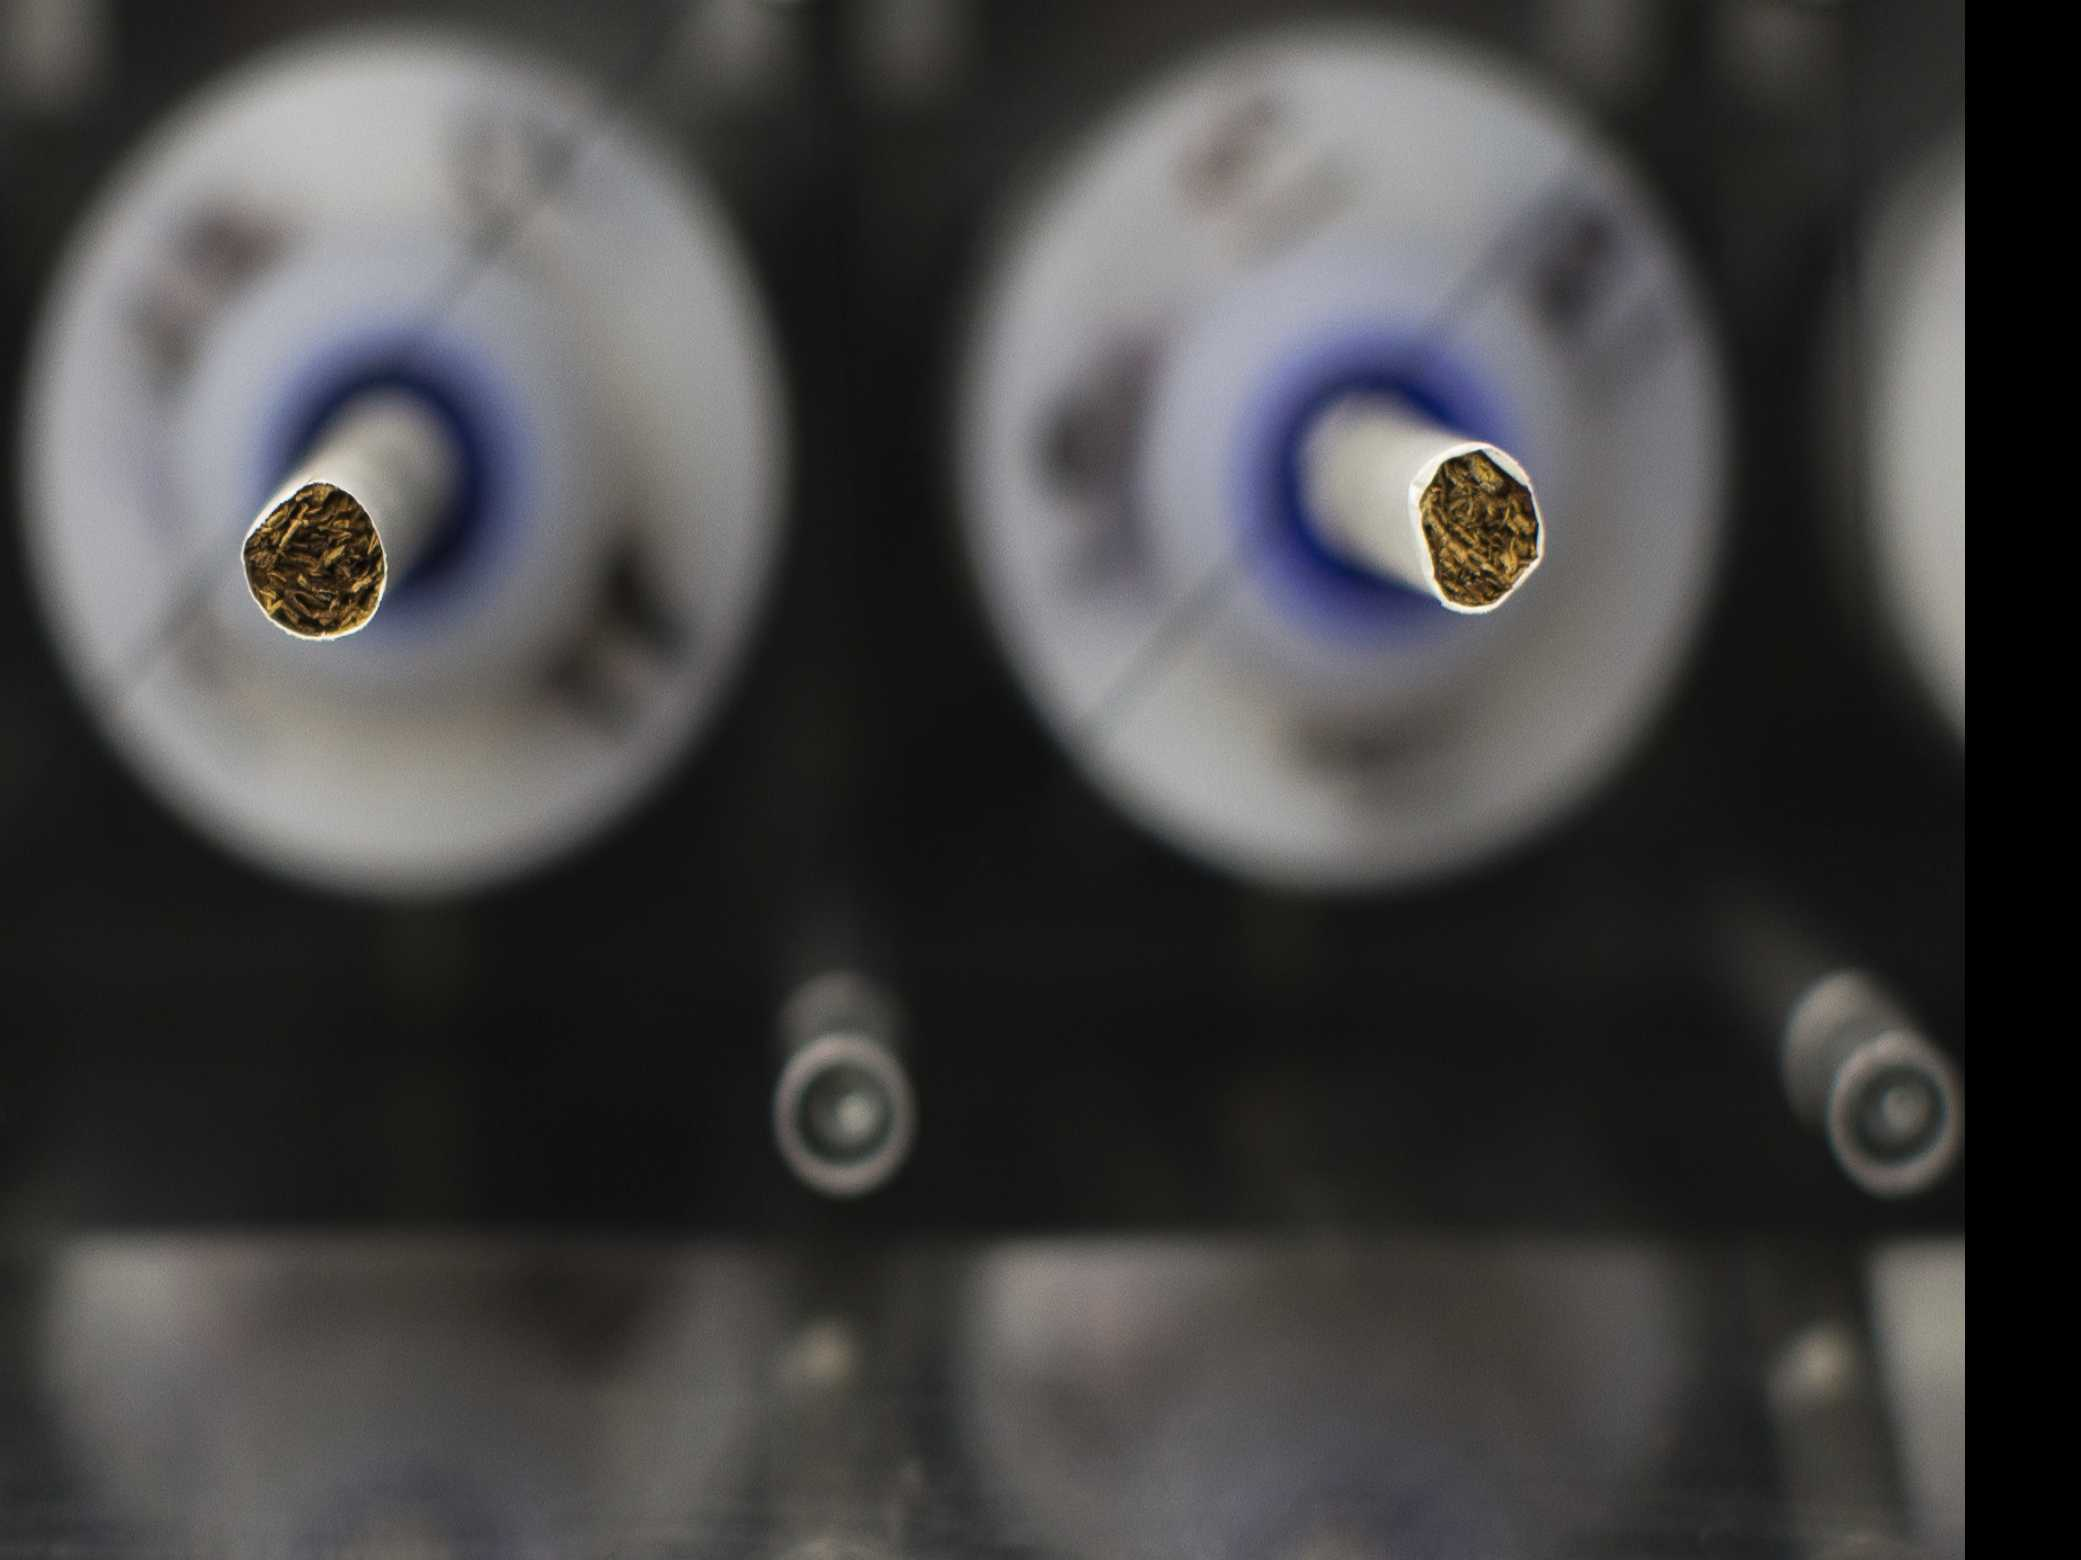 FDA Begins Push to Cut Addictive Nicotine in Cigarettes